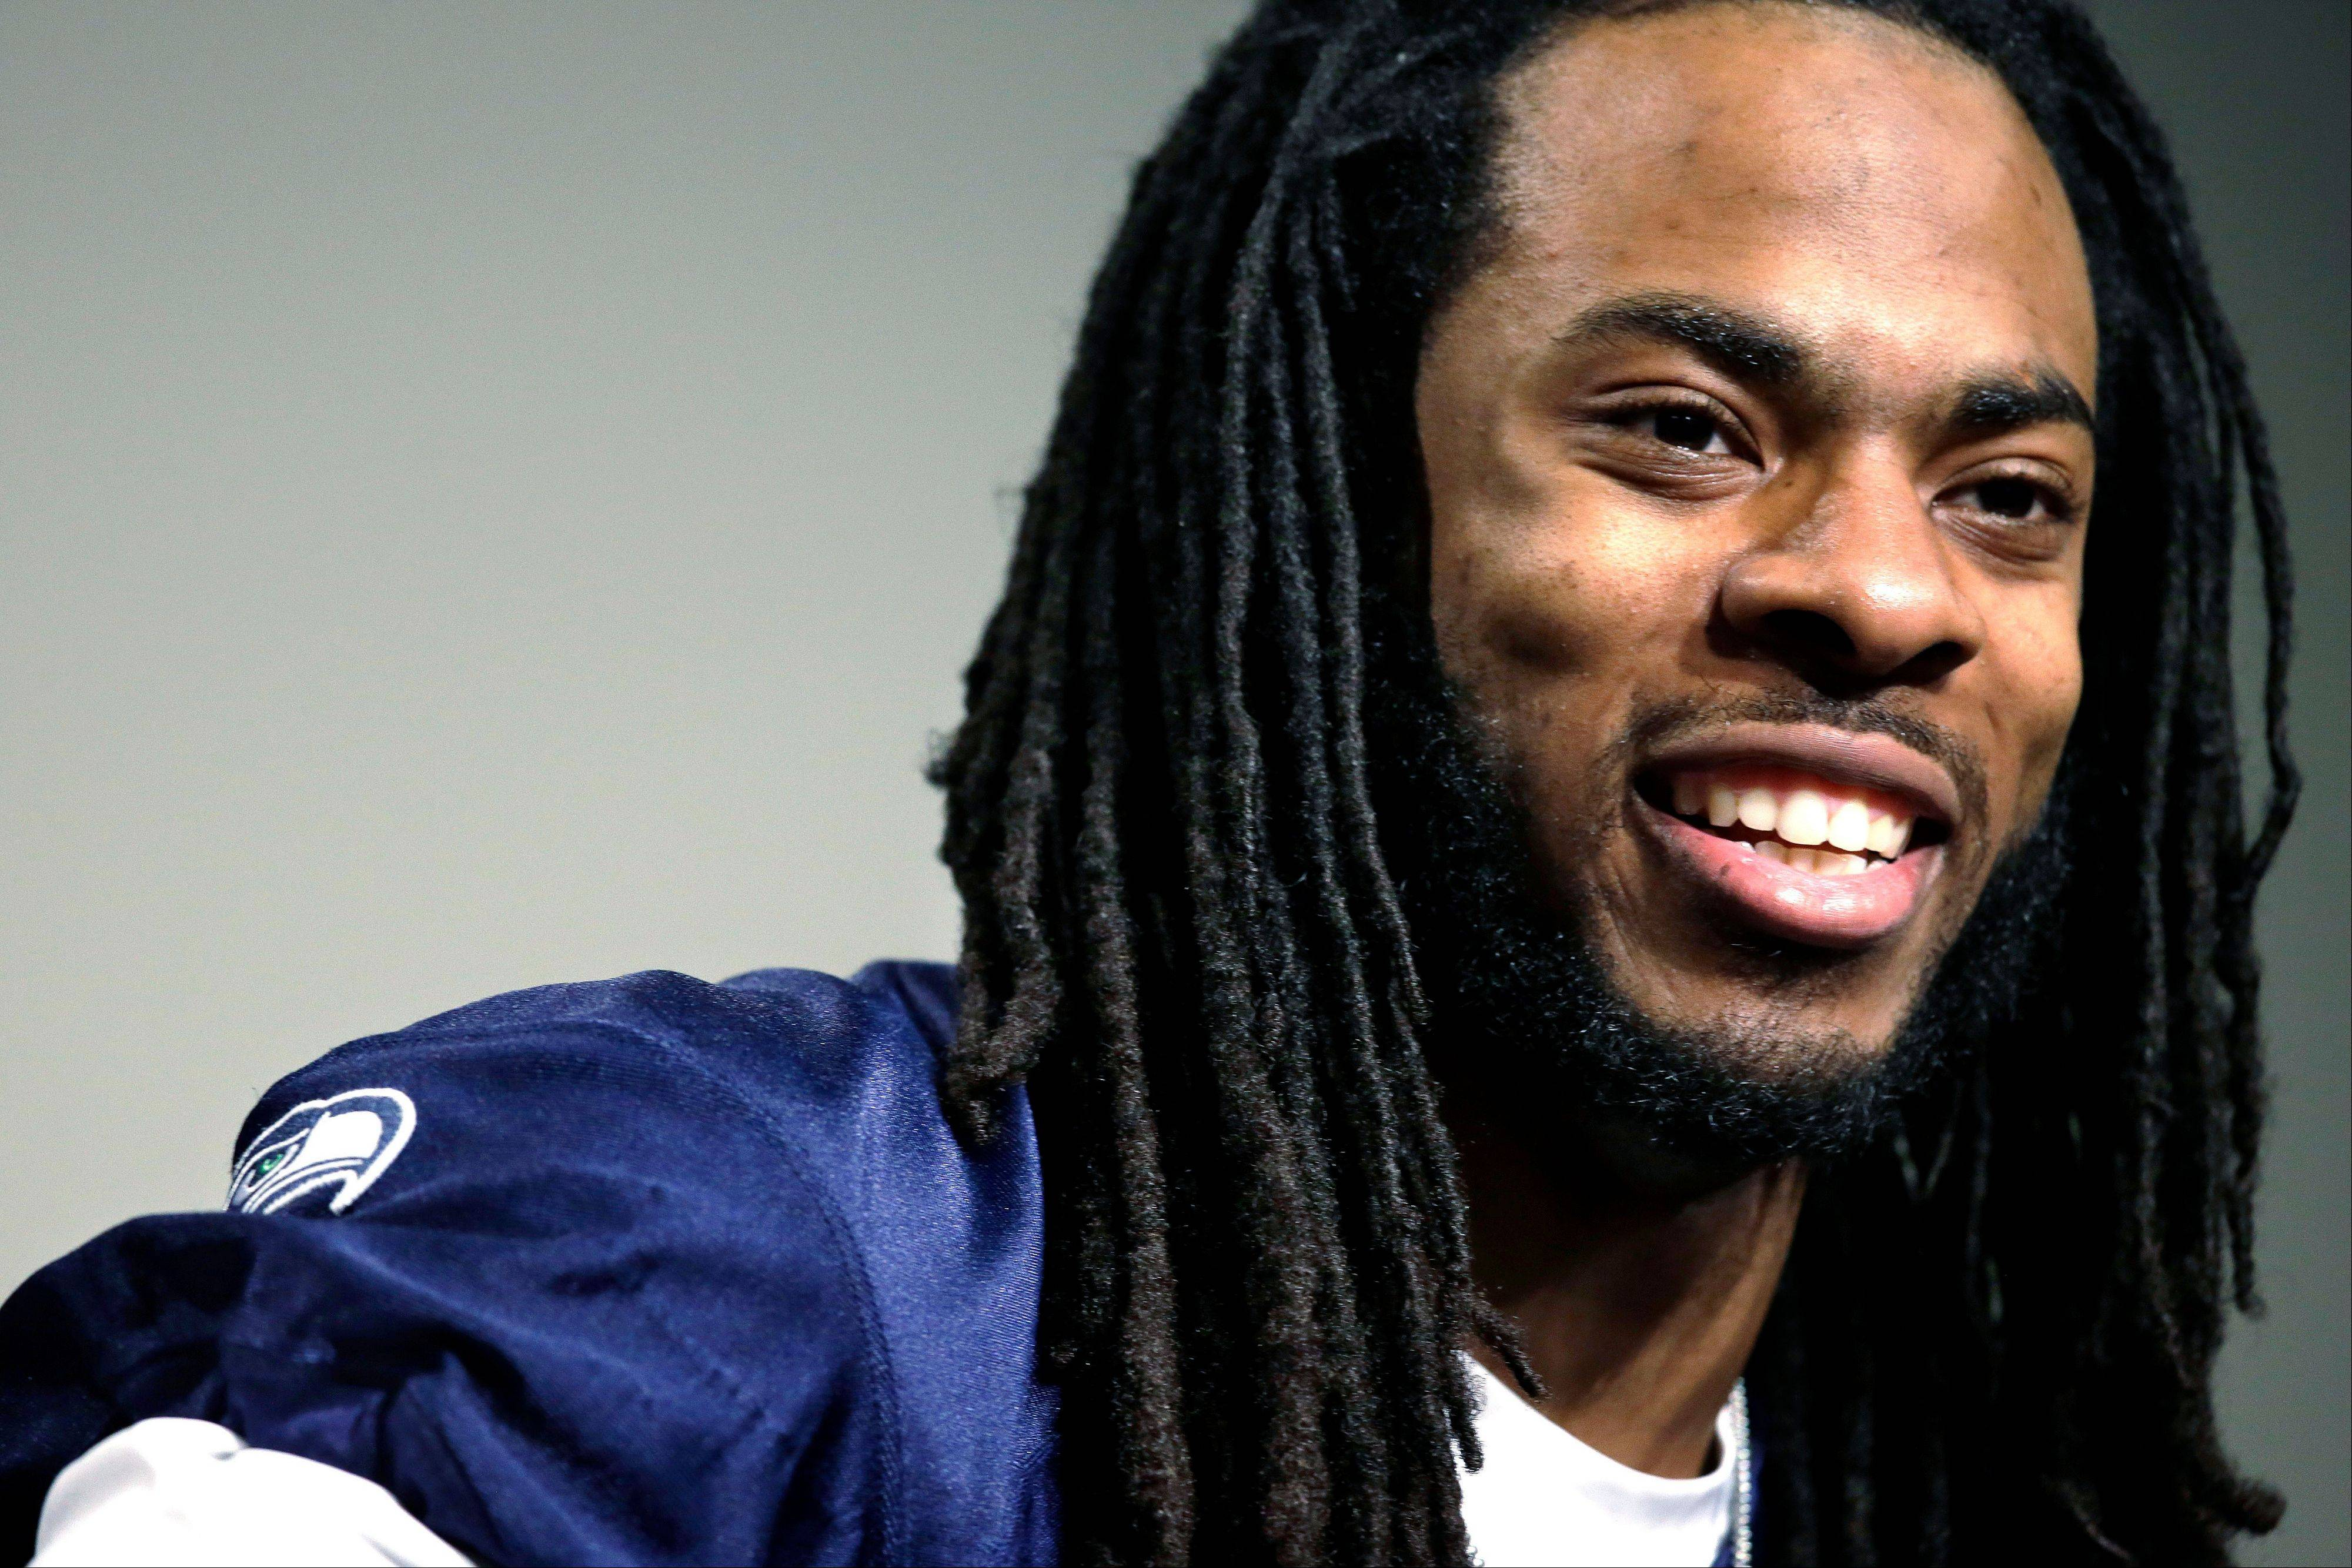 Seattle Seahawks' Richard Sherman speaks during a news conference Wednesday, Jan. 22, 2014, in Renton, Wash. The Seahawks play the Denver Broncos in the NFL football Super Bowl on Feb. 2.